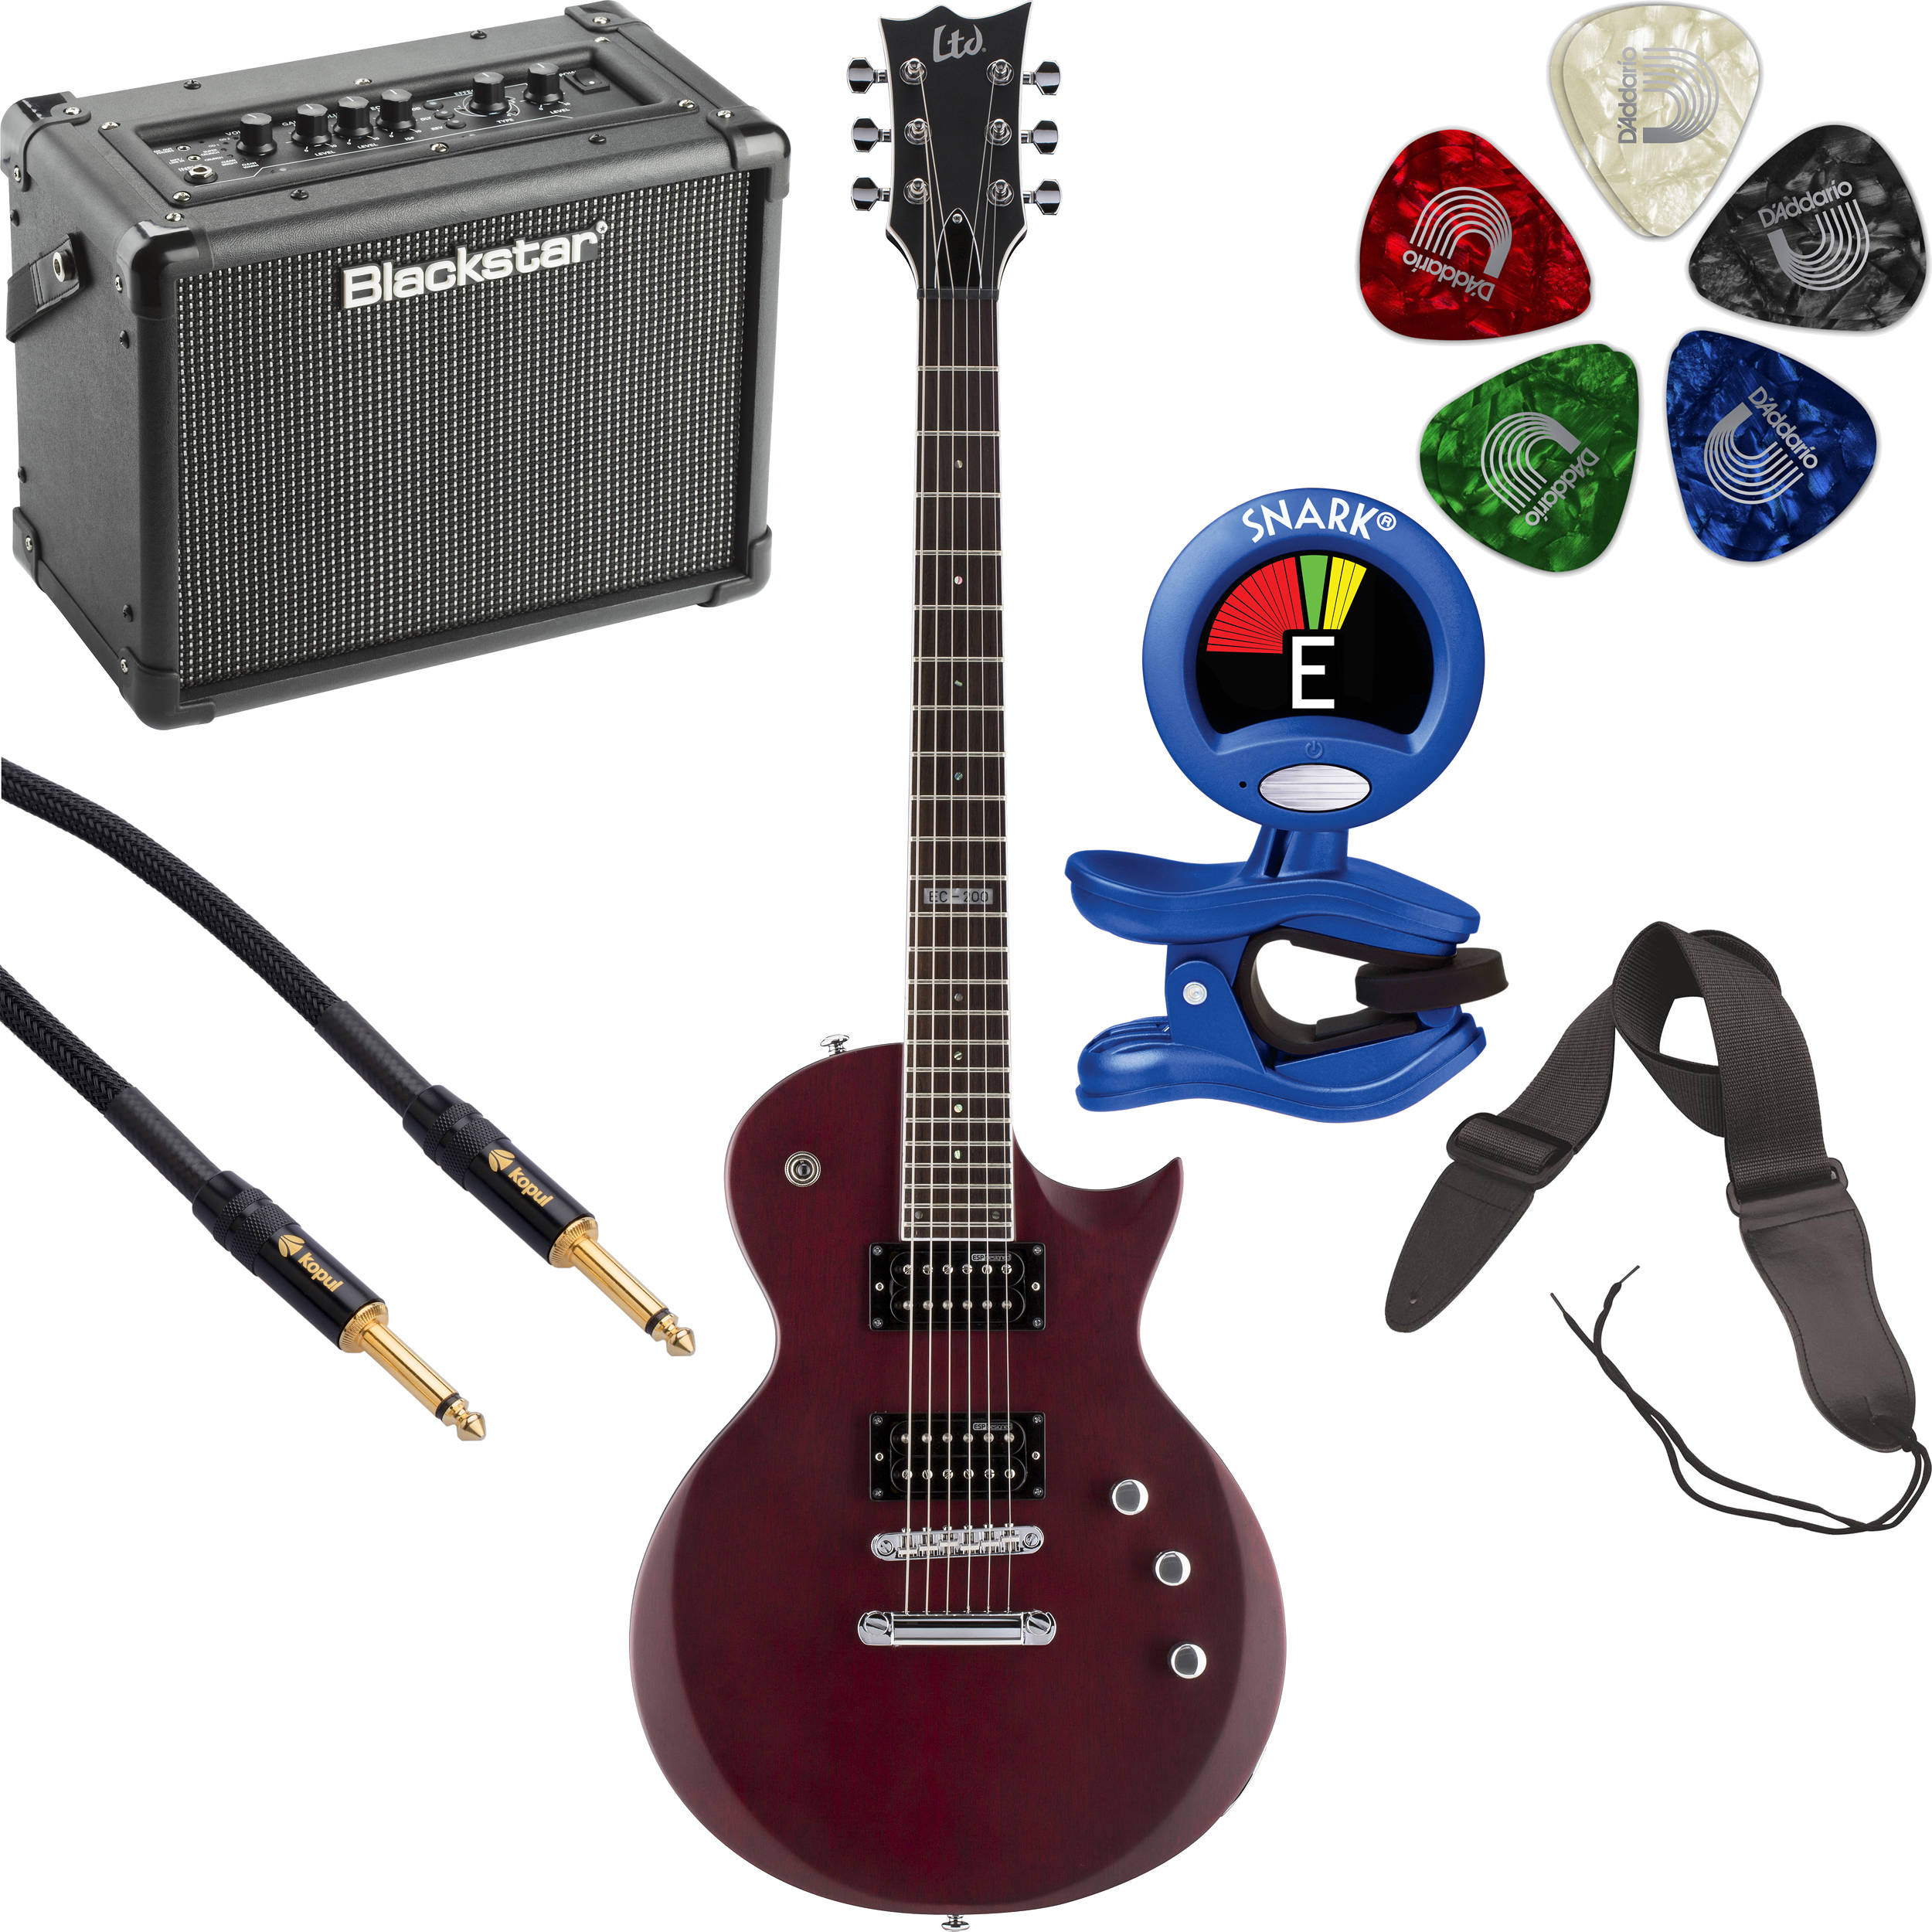 esp ltd ec 200 electric guitar starter kit b h photo video. Black Bedroom Furniture Sets. Home Design Ideas